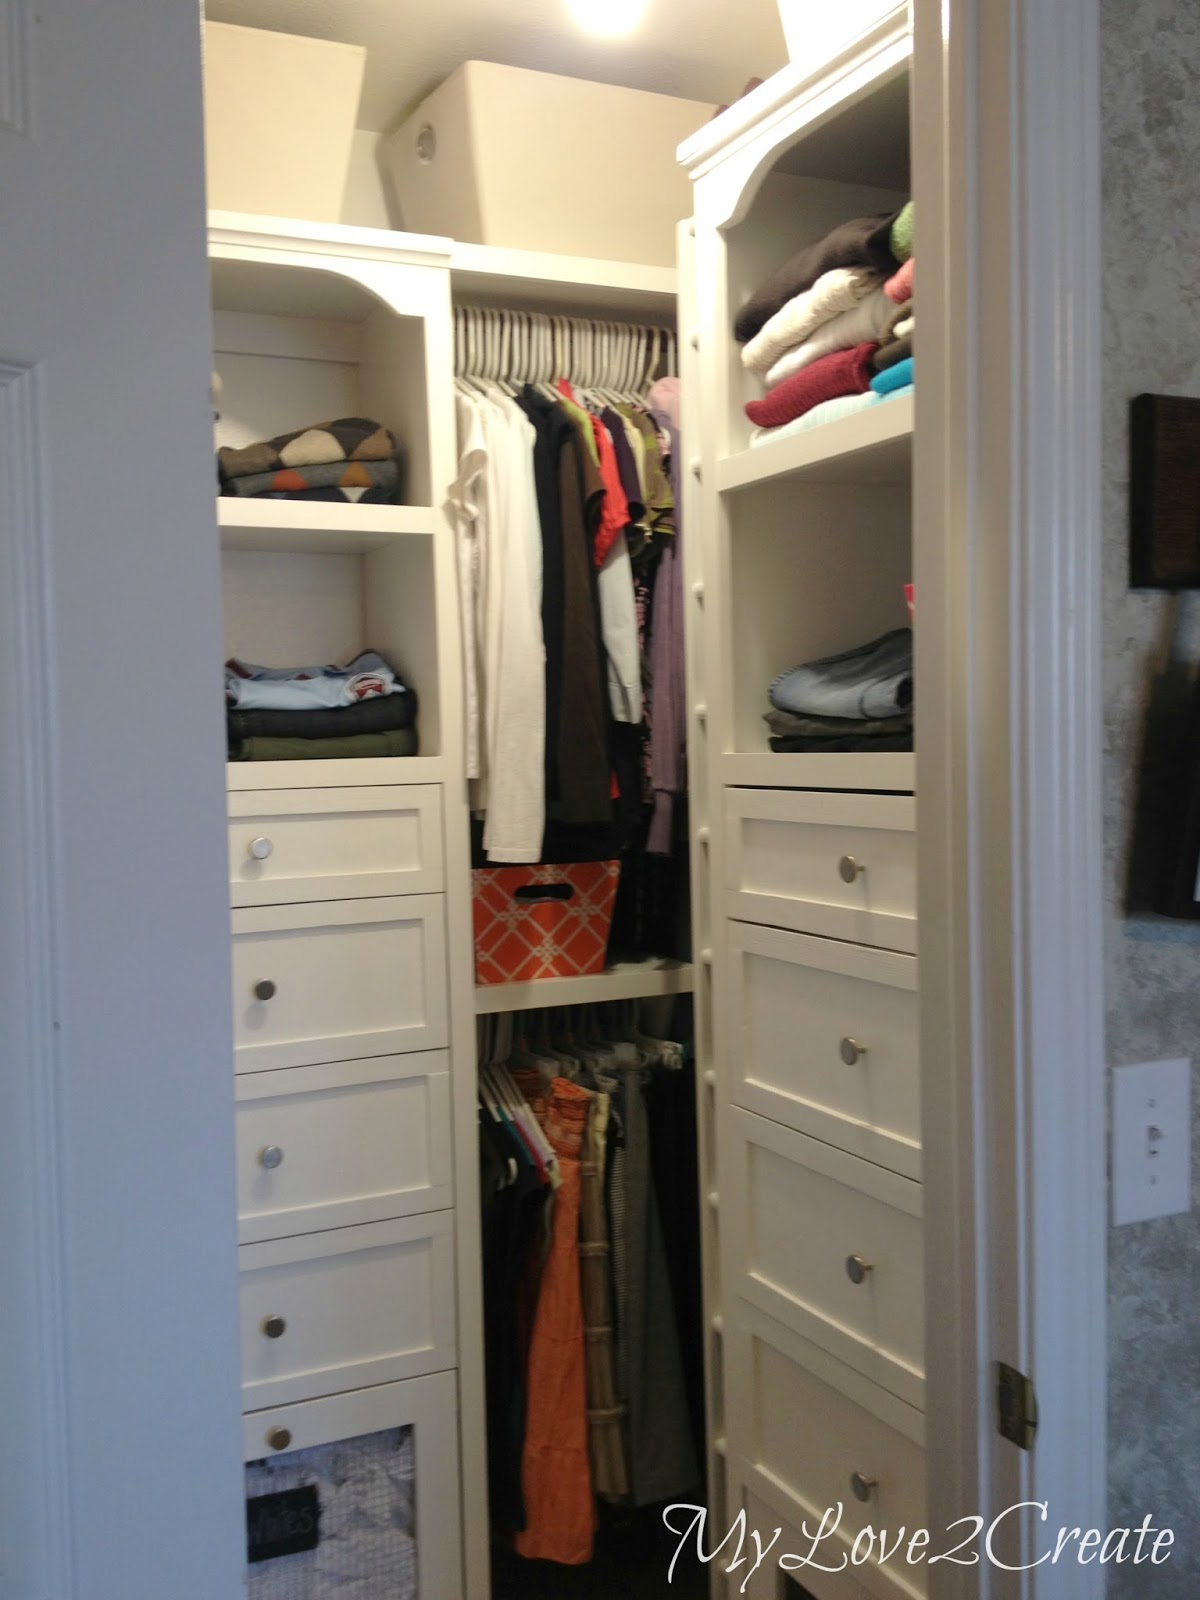 Inspiring Interior Storage Design Ideas with Diy Walk in Closet: Diy Walk In Closet | Closet Shelving Ideas Diy | Walk In Closet Organizer